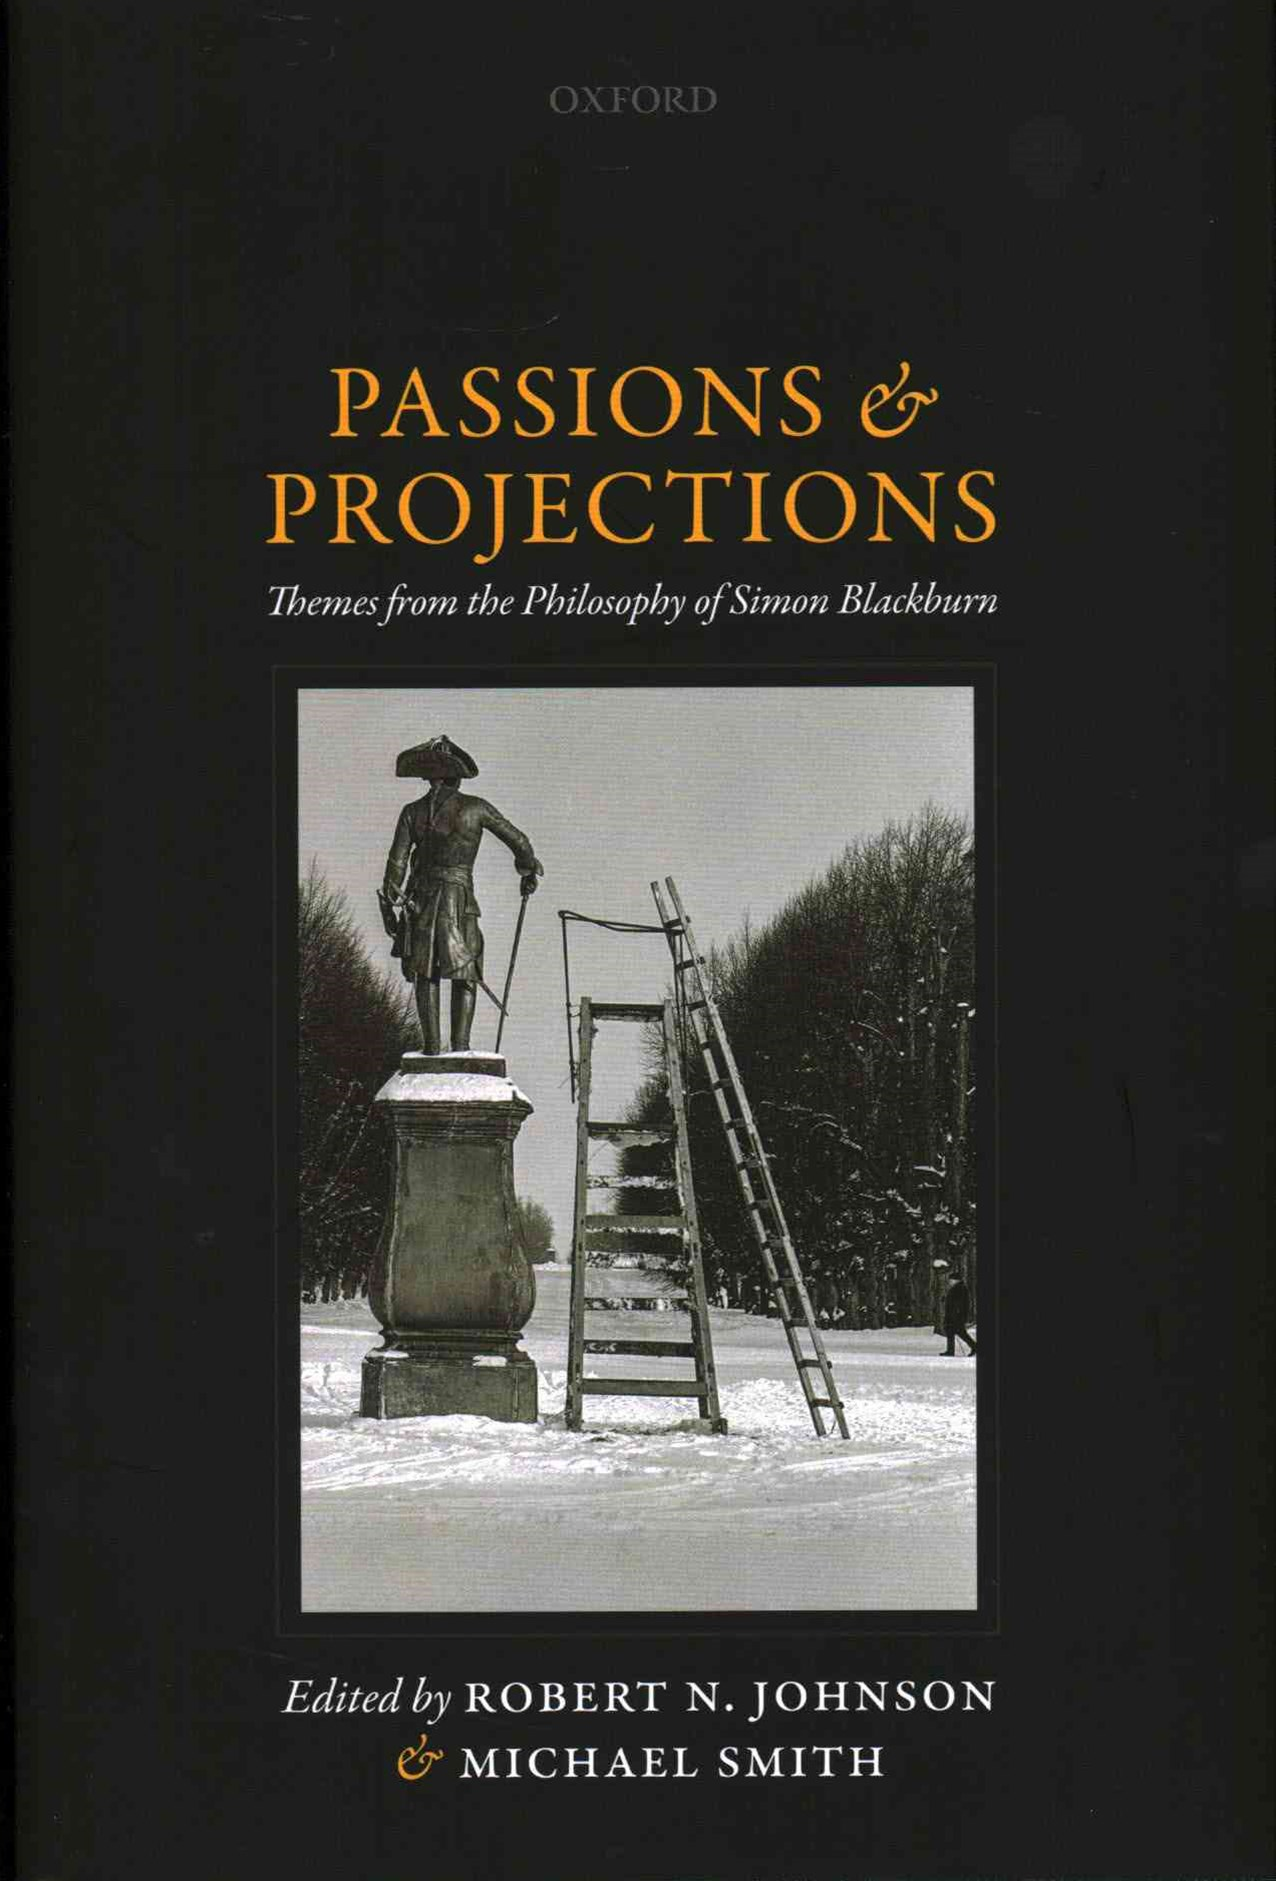 Passions and Projections